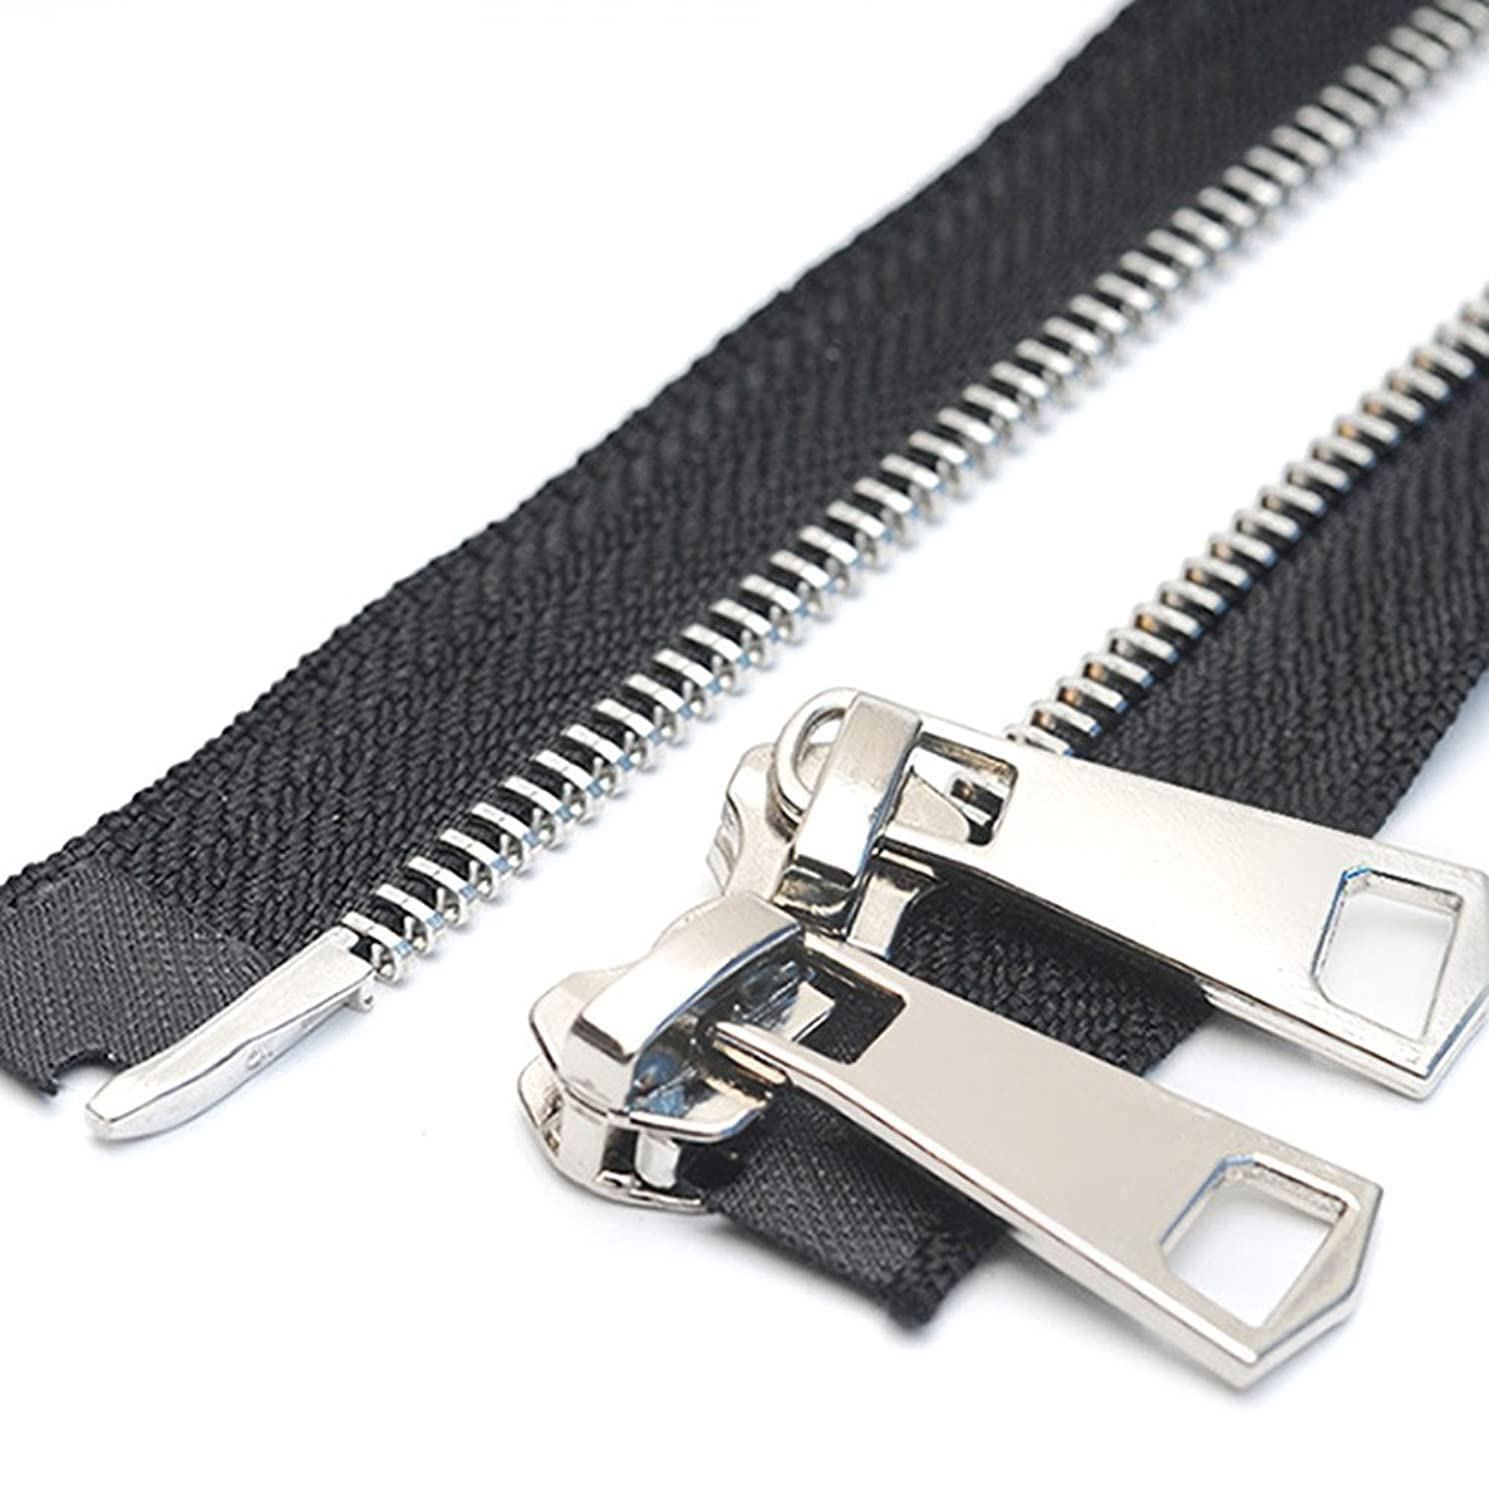 YaHoGa #5 32 Inch Two Way Separating Jacket Zipper Silver Metal Zippers for Jackets Coats Sewing Crafts (32